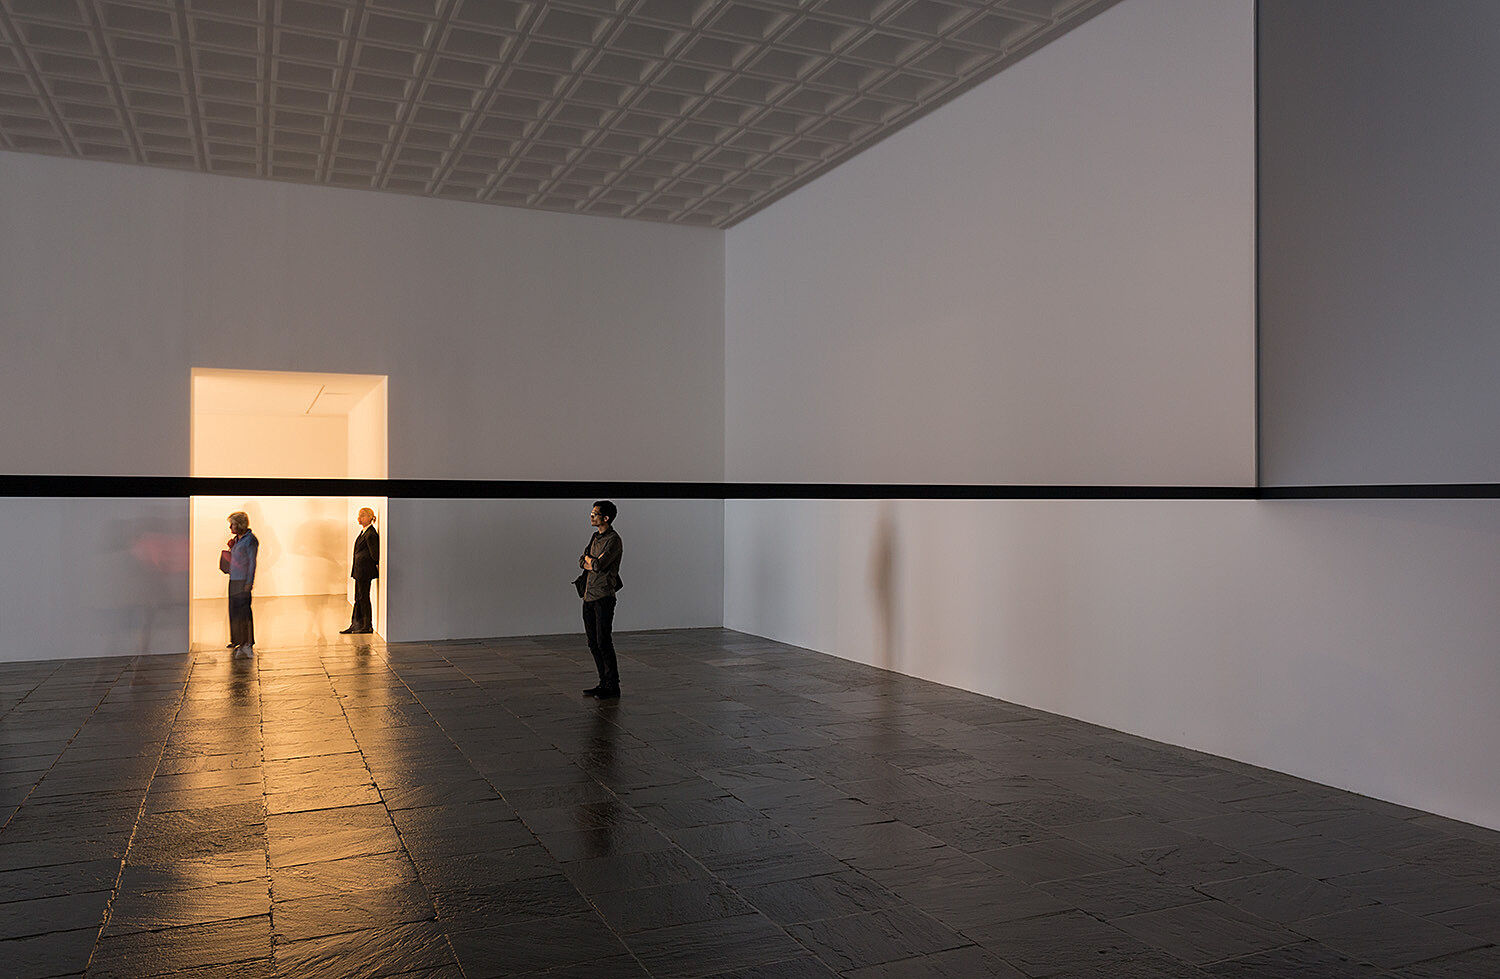 Three people in a gallery with light streaming through a door.